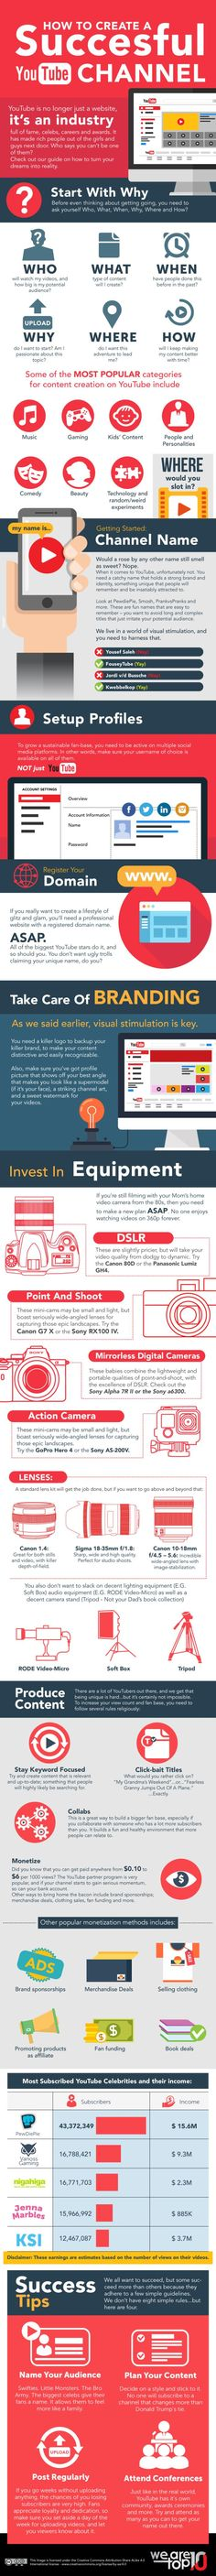 How to Create a Successful Youtube Channel (Infographic) #infographic #infographics